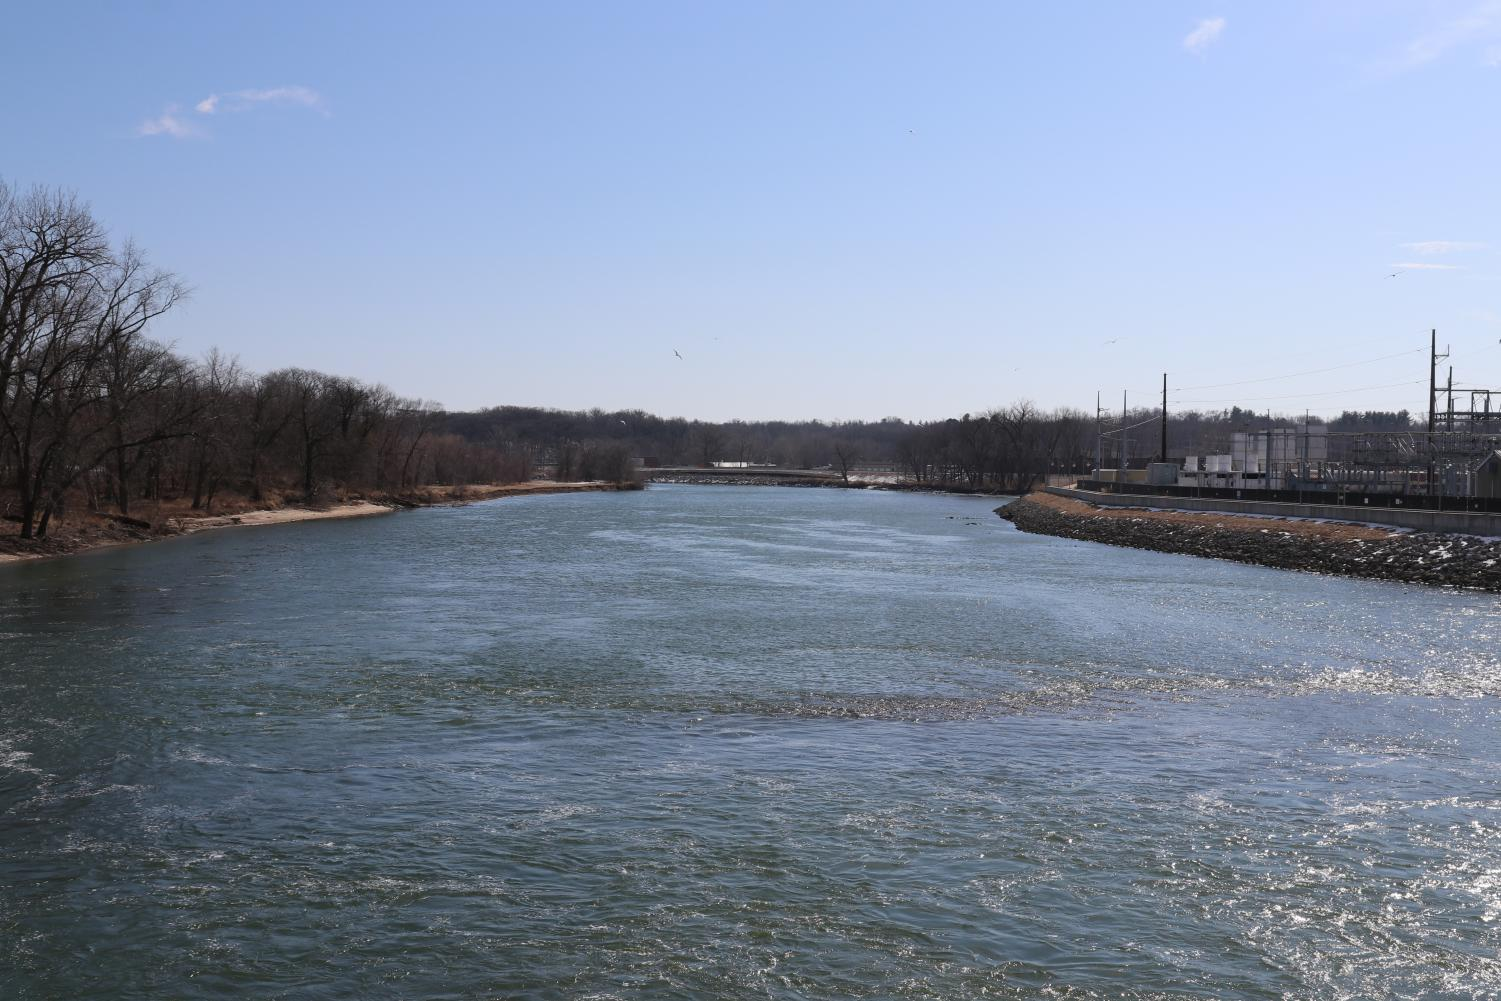 The Iowa River is about 330 miles long, starting in northcentral Iowa and flowing past Iowa City on its way to the Mississippi River.